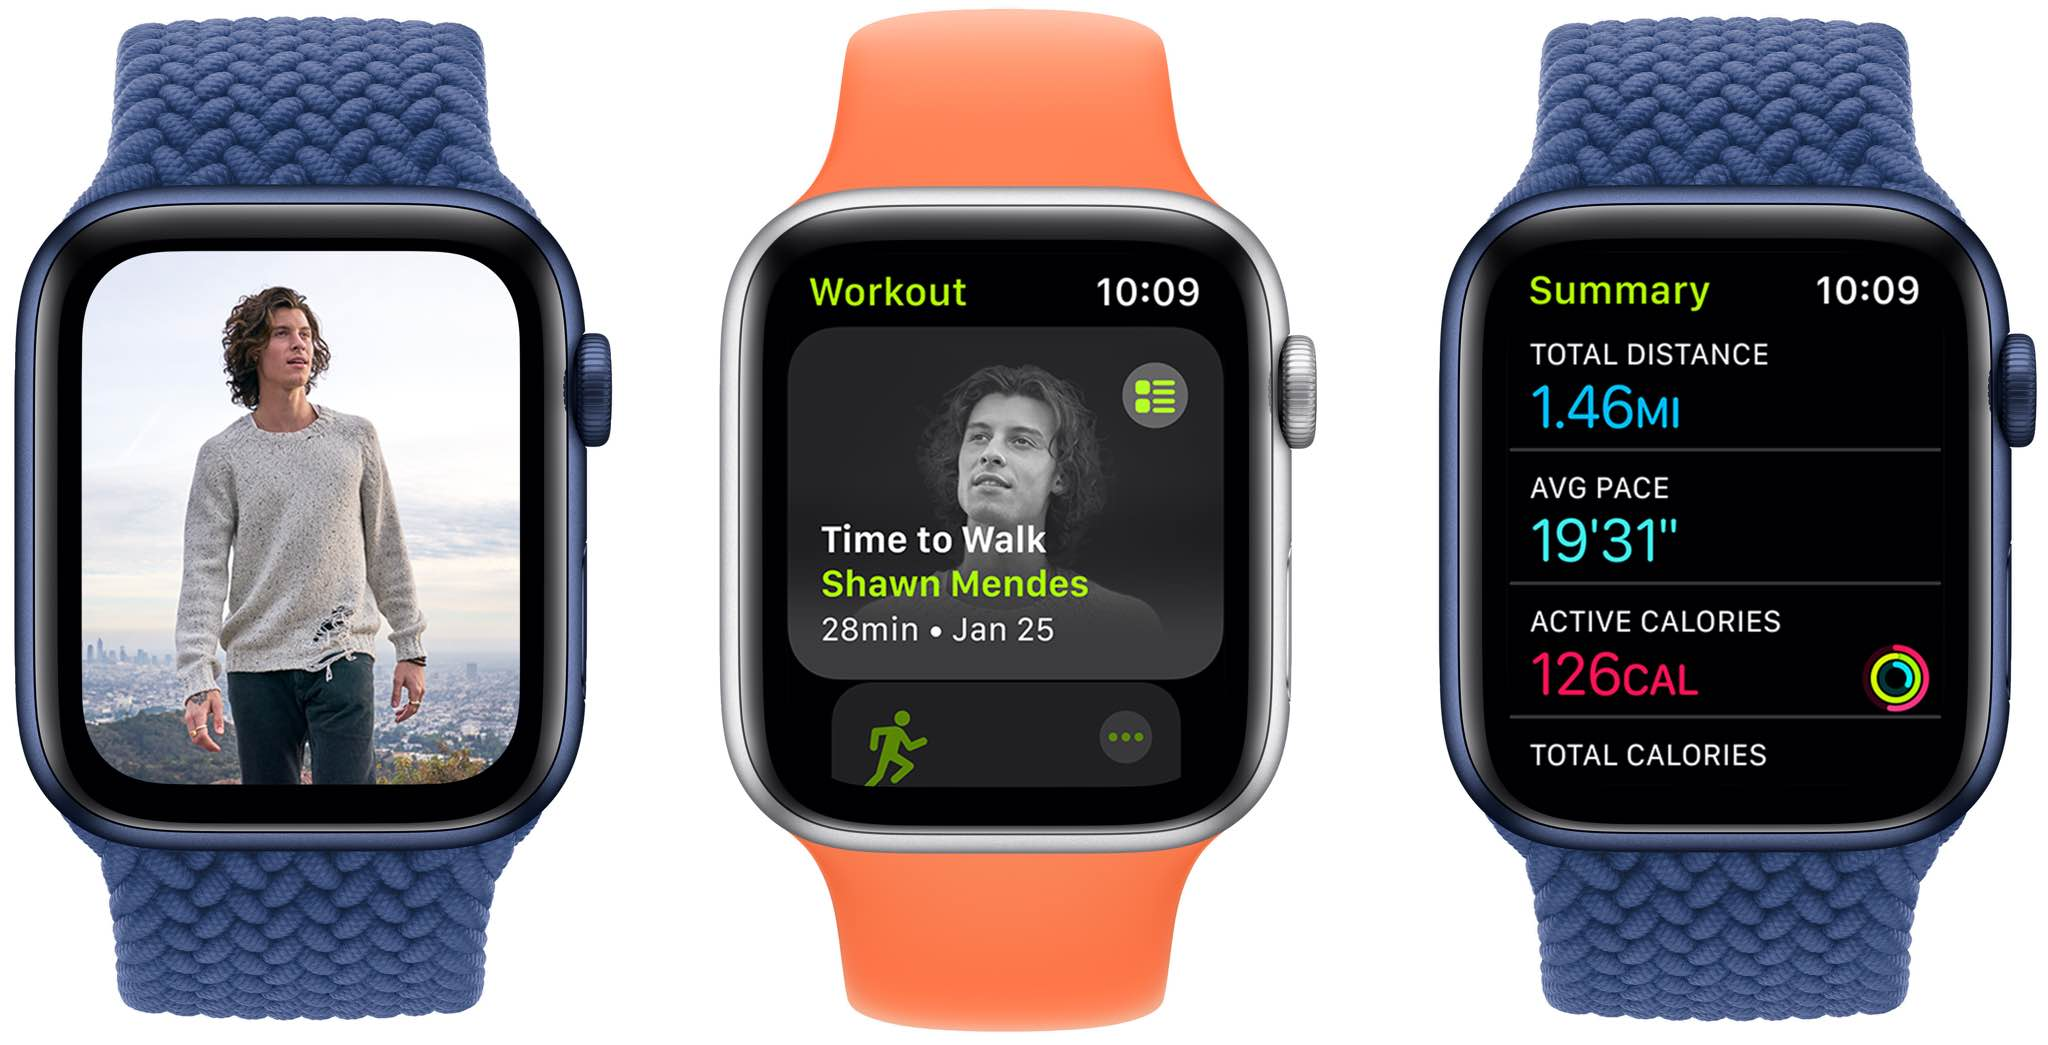 Apple Watch screenshots showing the Time to Walk audio walking session with Shawn Mendes